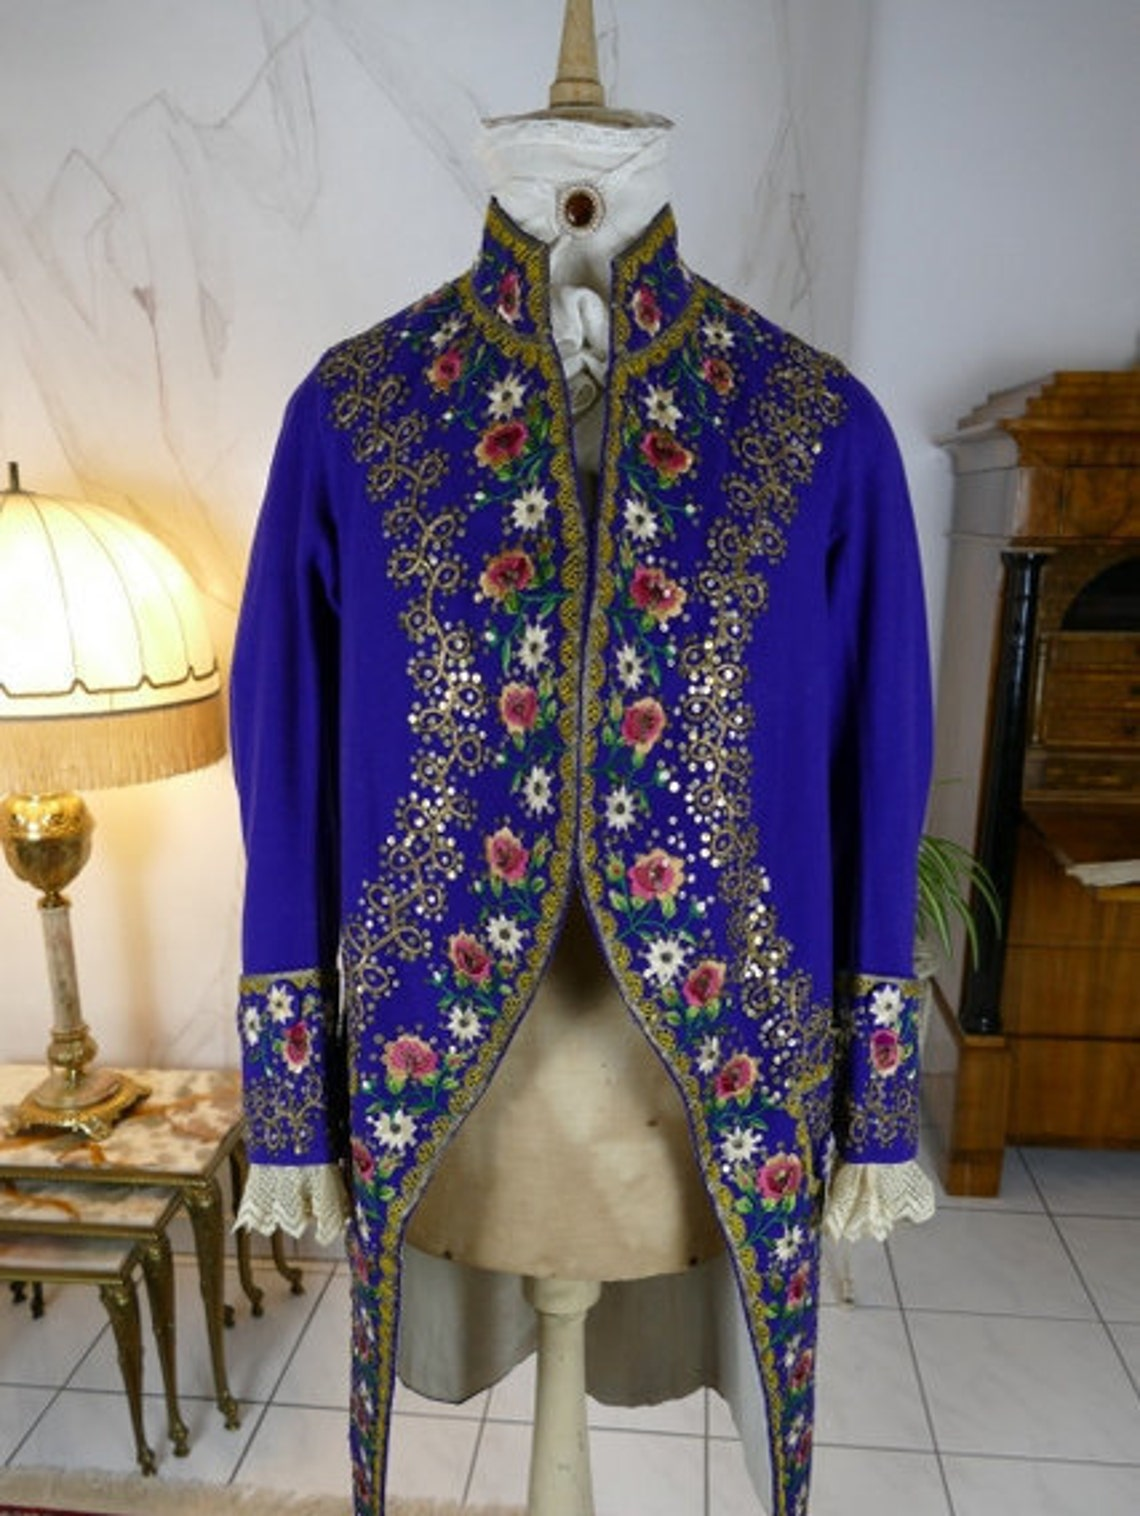 1855 Embroidered Coat, Italy, Man's Victorian Antique Dress, Gown, Dress